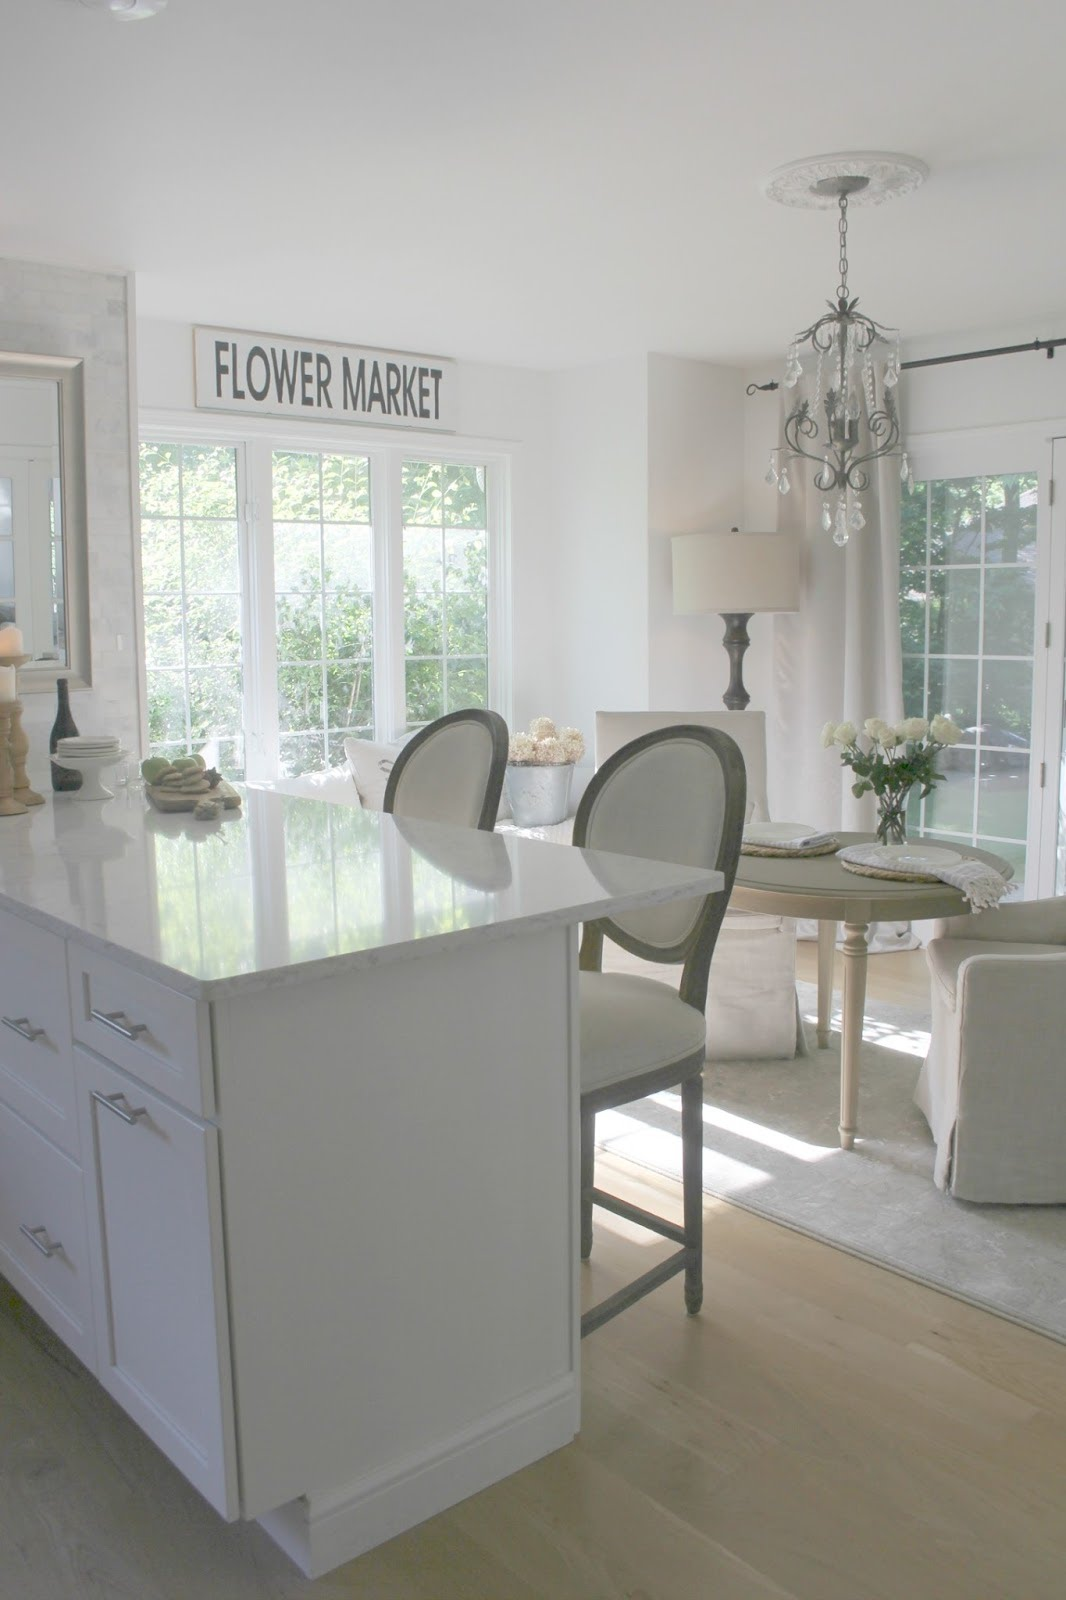 White kitchen with serene decor, Minuet quartz counters, linen chairs, vintage sign, and crystal chandelier. Design by Hello Lovely Studio. #whitekitchen #modernfarmhouse #frenchcountry #europeancountry #serene #timeless #hellolovelystudio